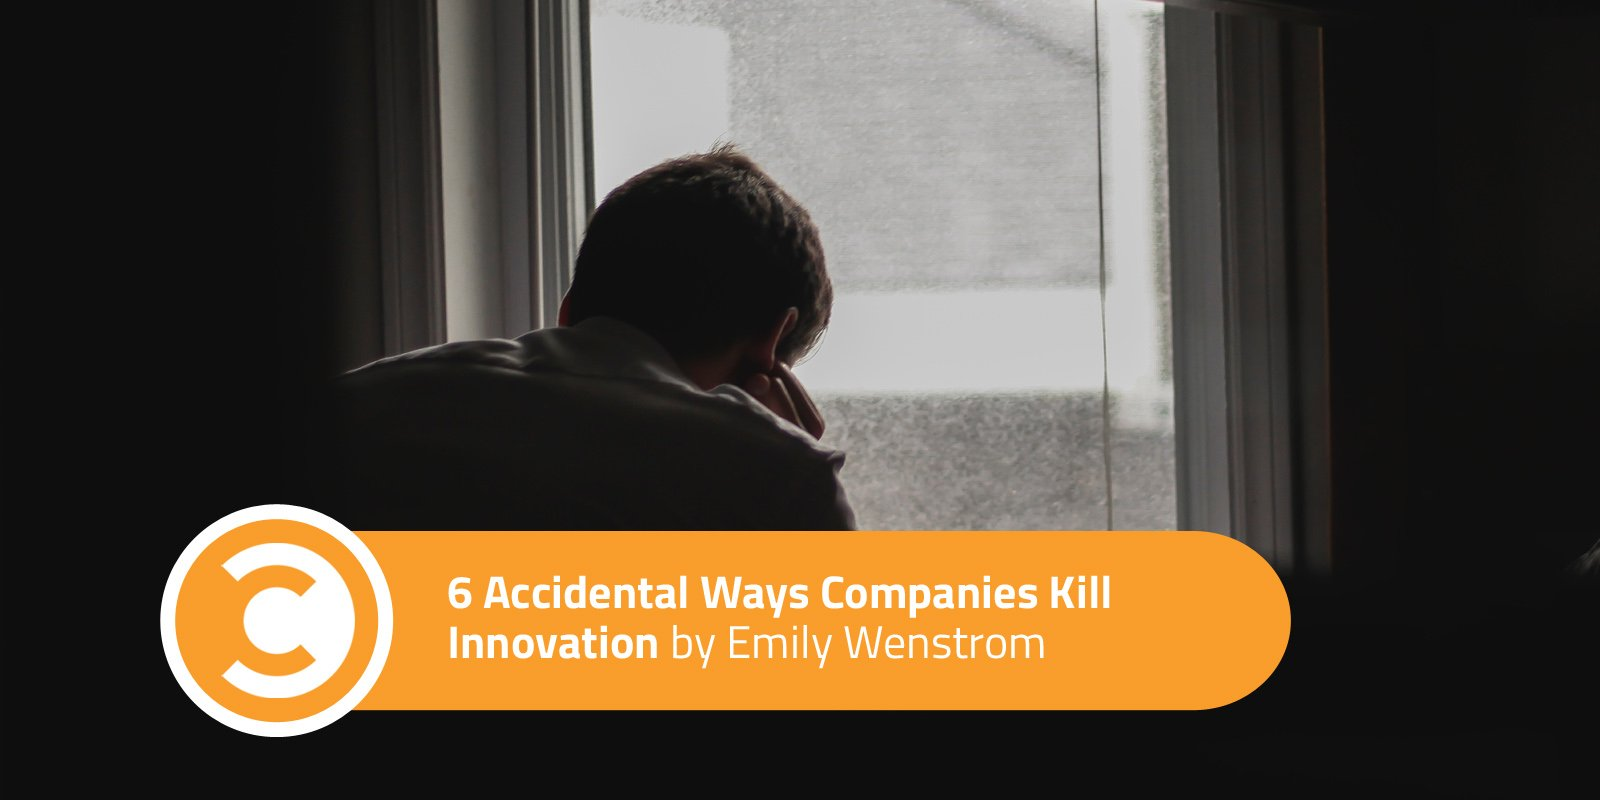 6 Accidental Ways Companies Kill Innovation